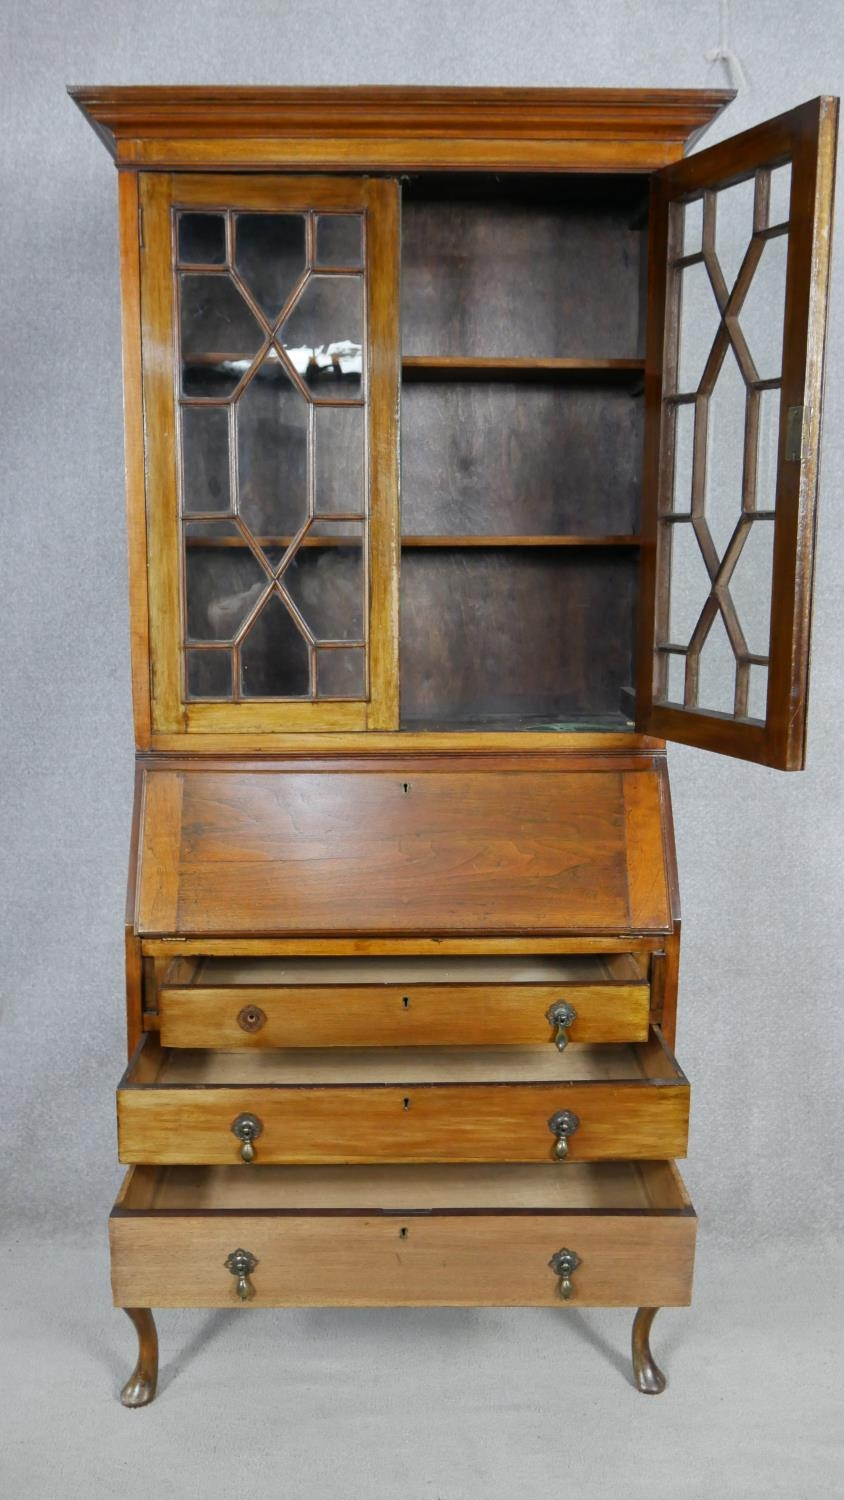 An early 20th century mahogany two section Georgian style bureau bookcase with fitted interior on - Image 2 of 8